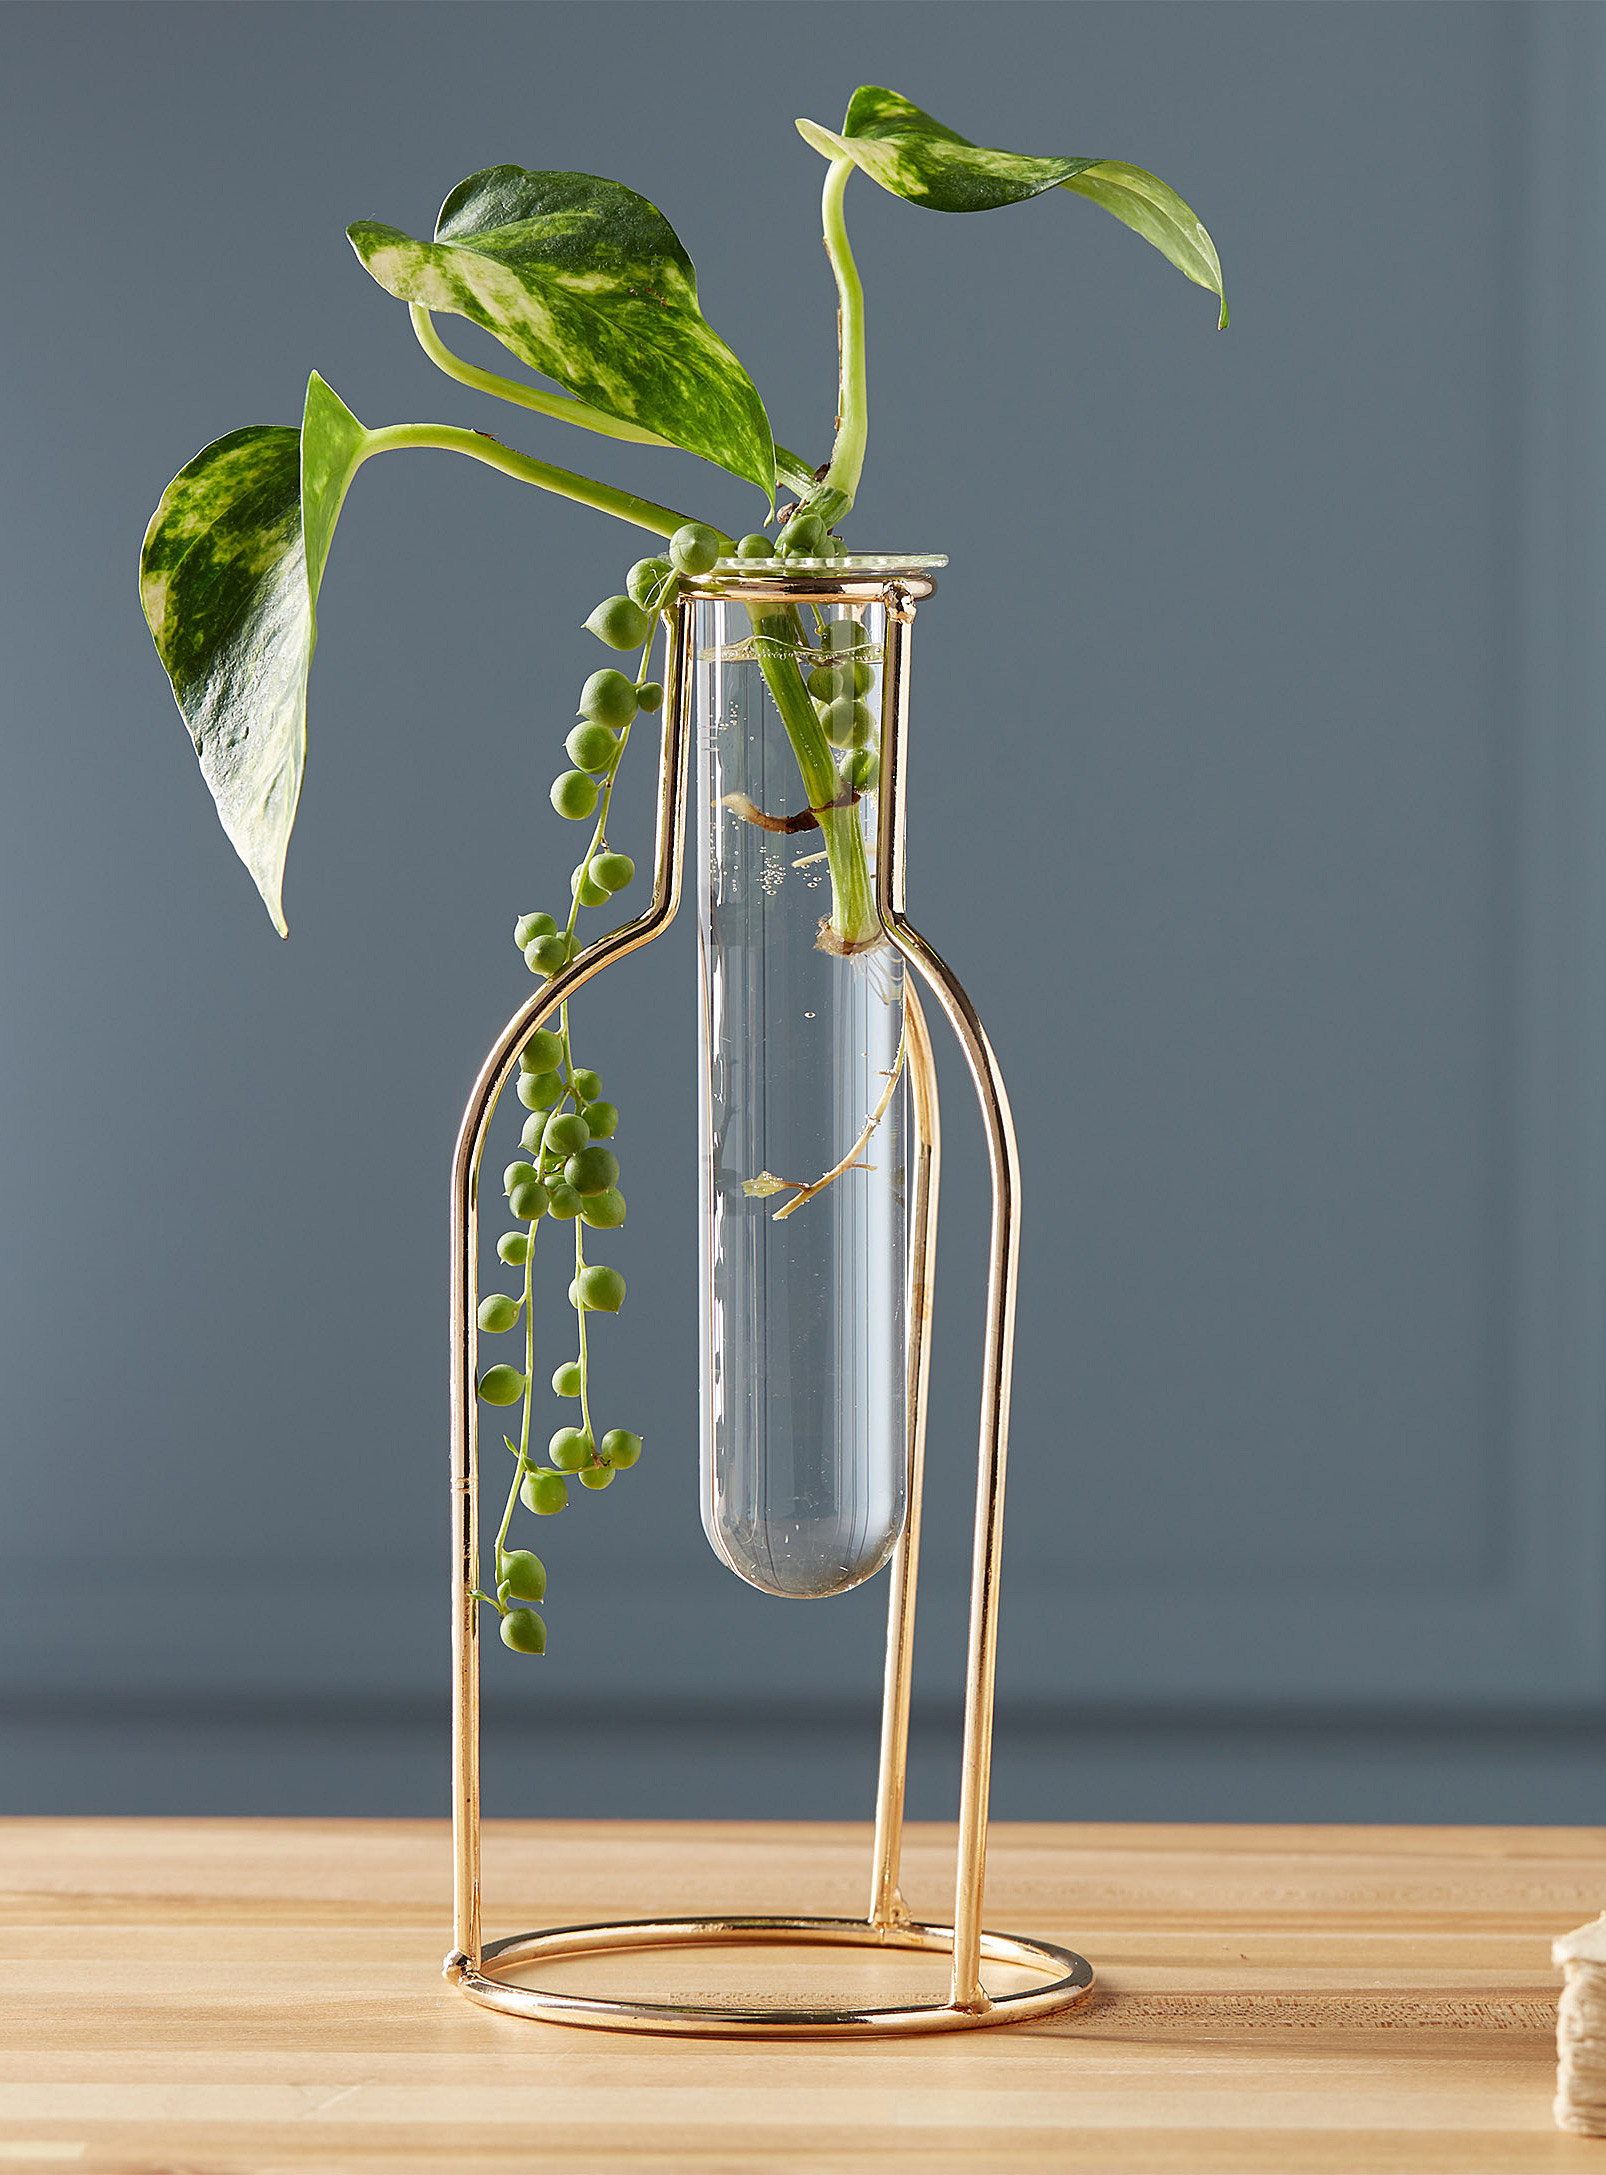 A small glass vial filled with water suspended from a metal holder with plant trimmings inside